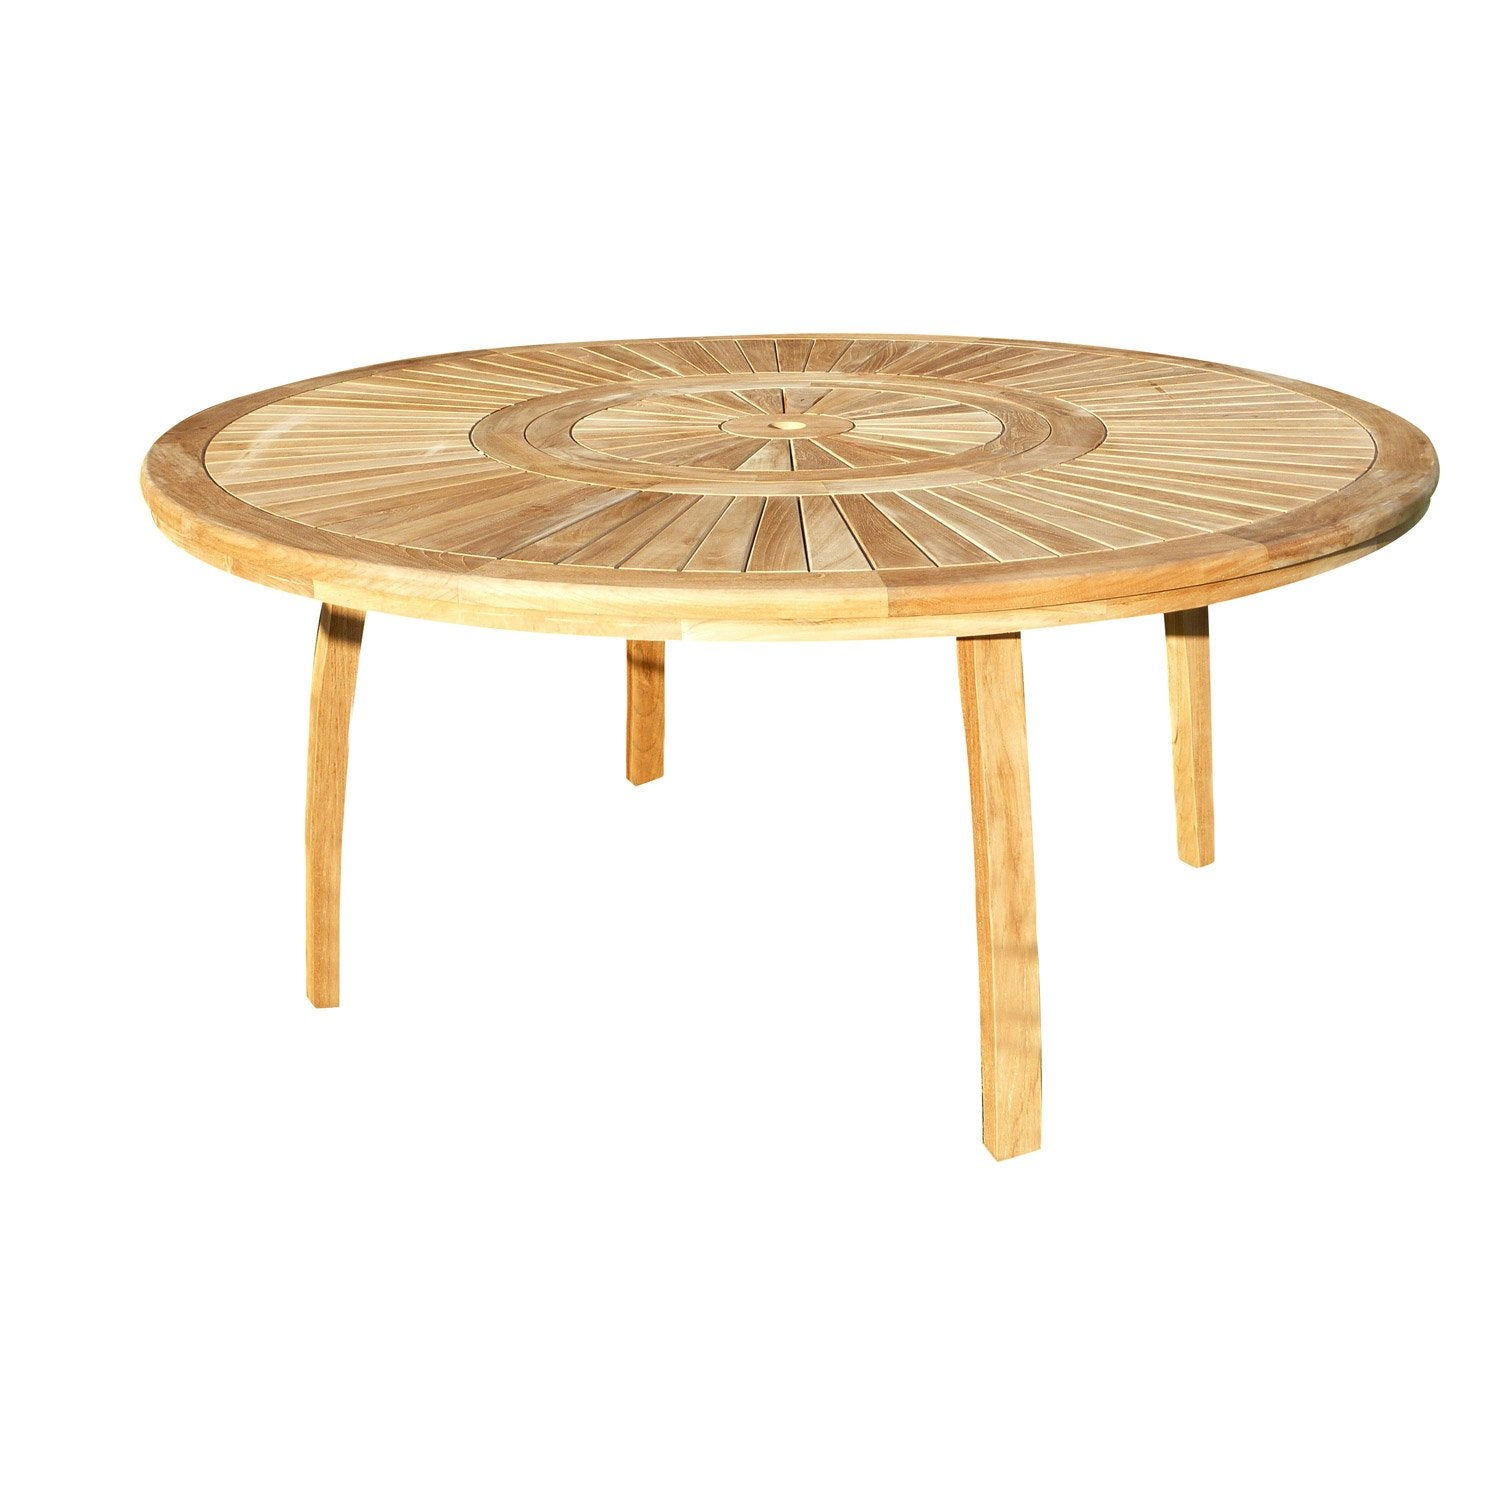 Table de jardin orion ronde naturel 8 personnes leroy merlin for Ikea salons de jardin